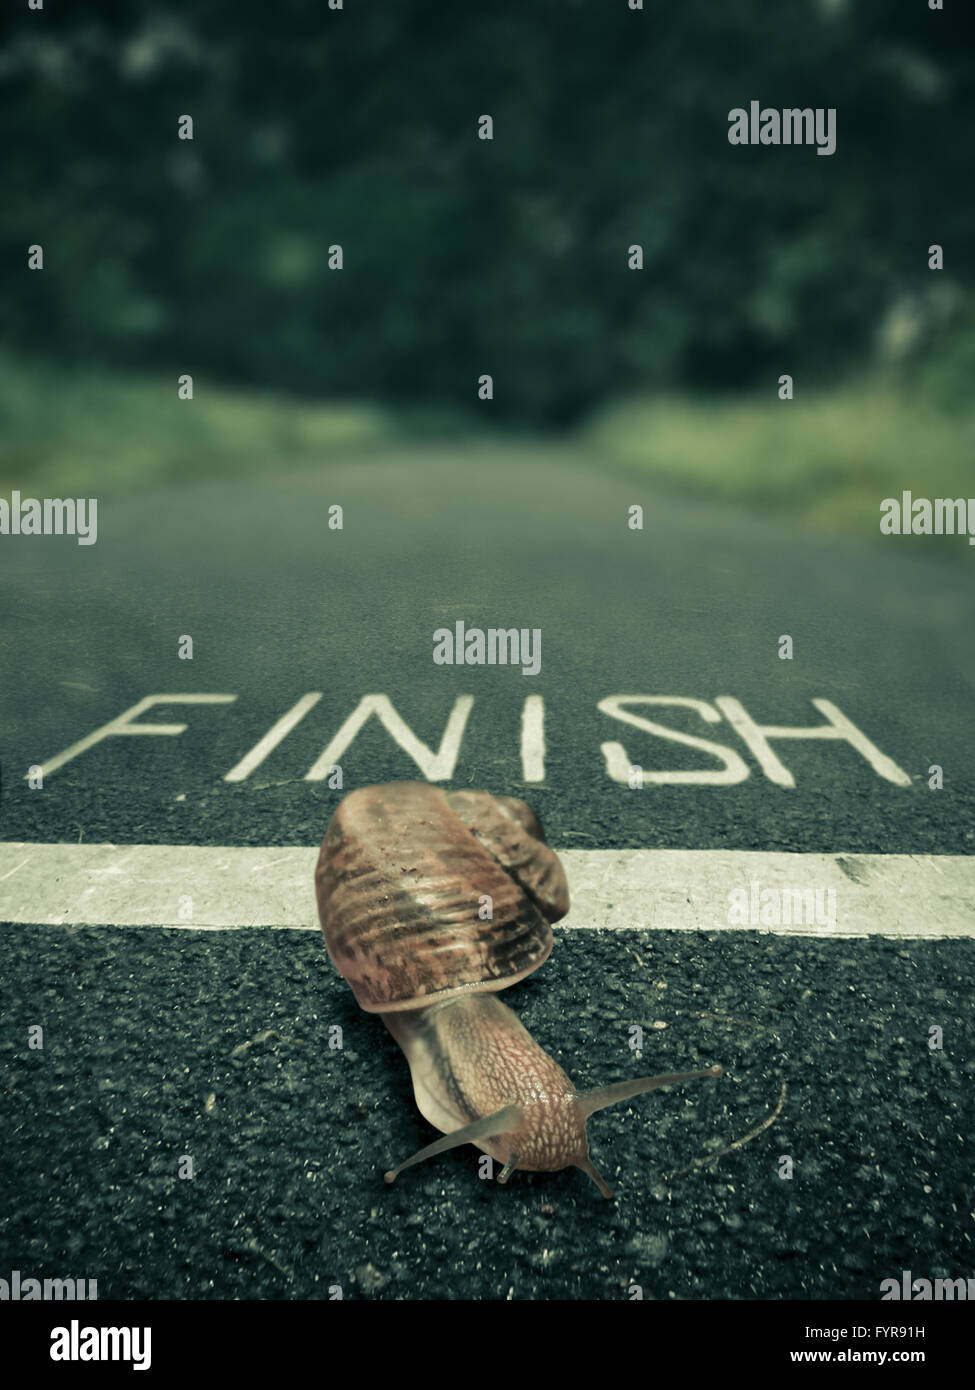 Snail going over the finish line, Concept Stock Photo